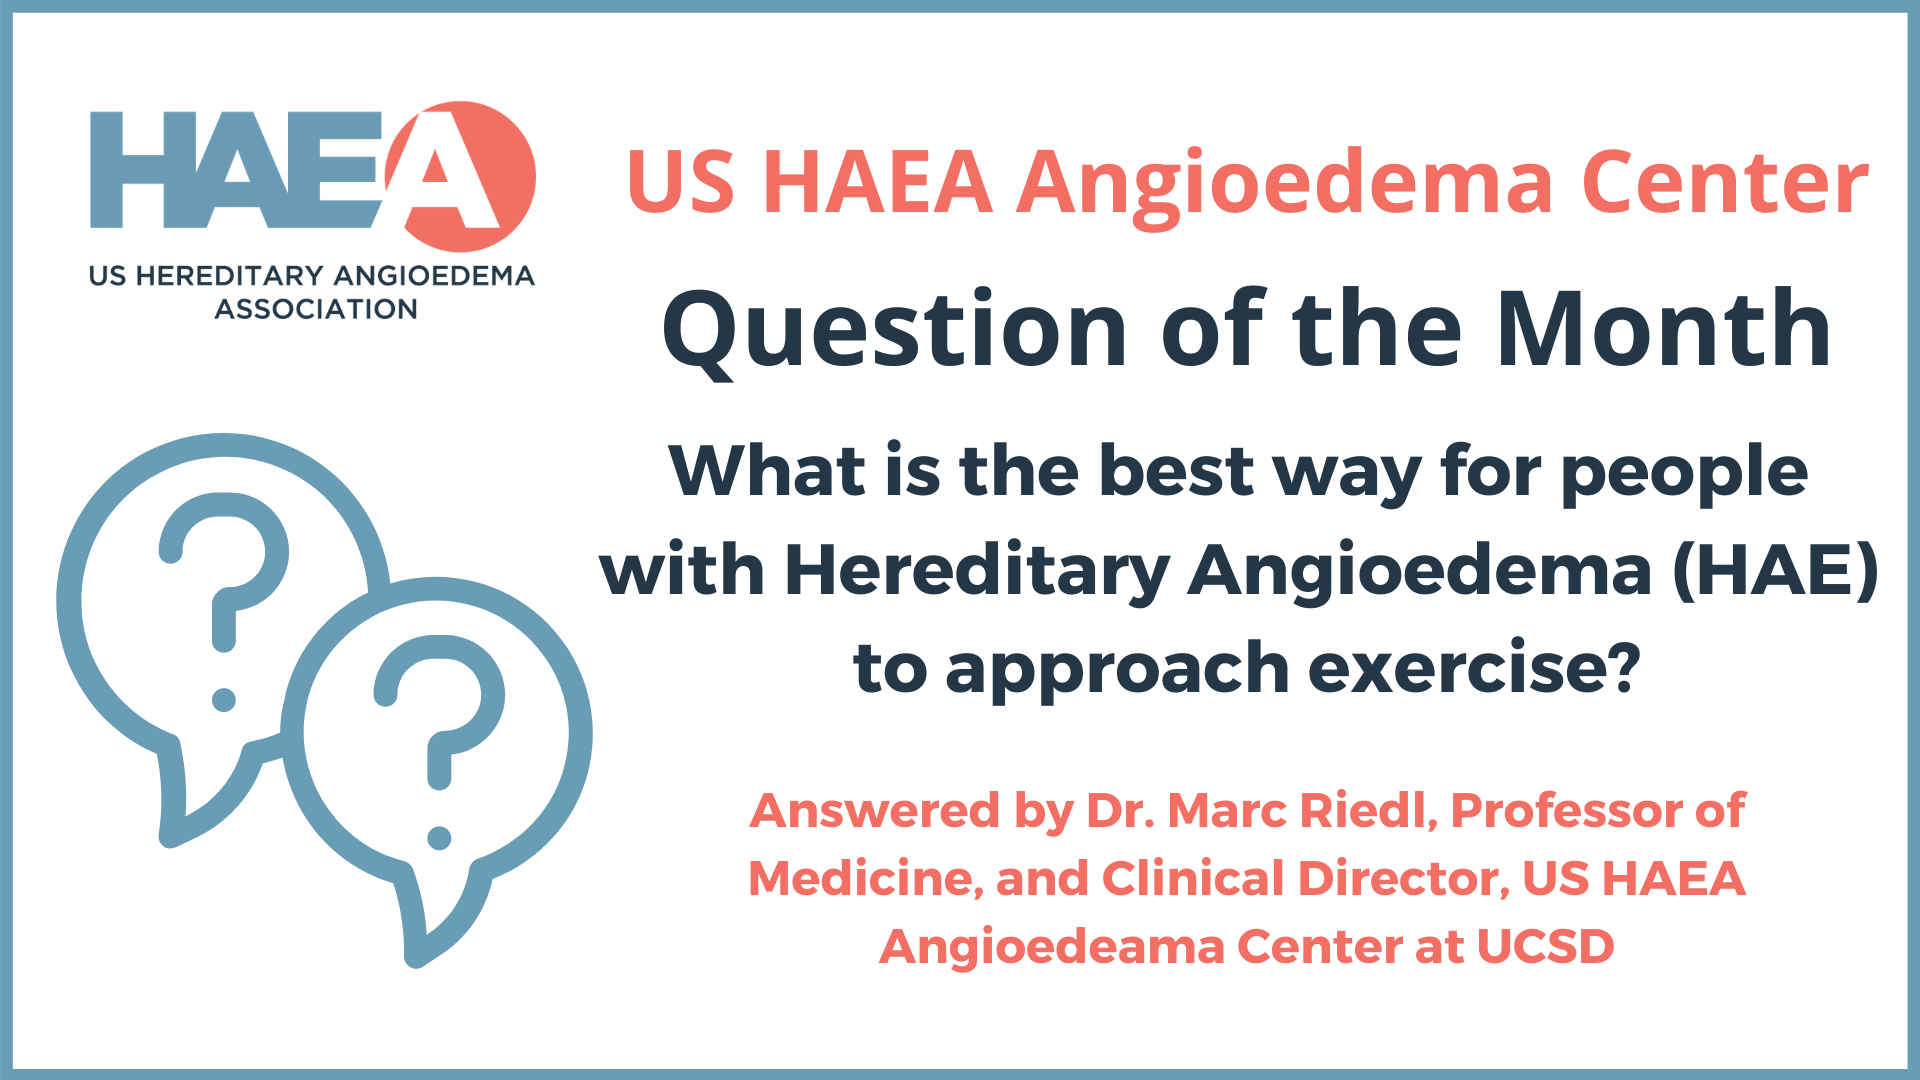 What is the best way for people with Hereditary Angioedema (HAE) to approach exercise?